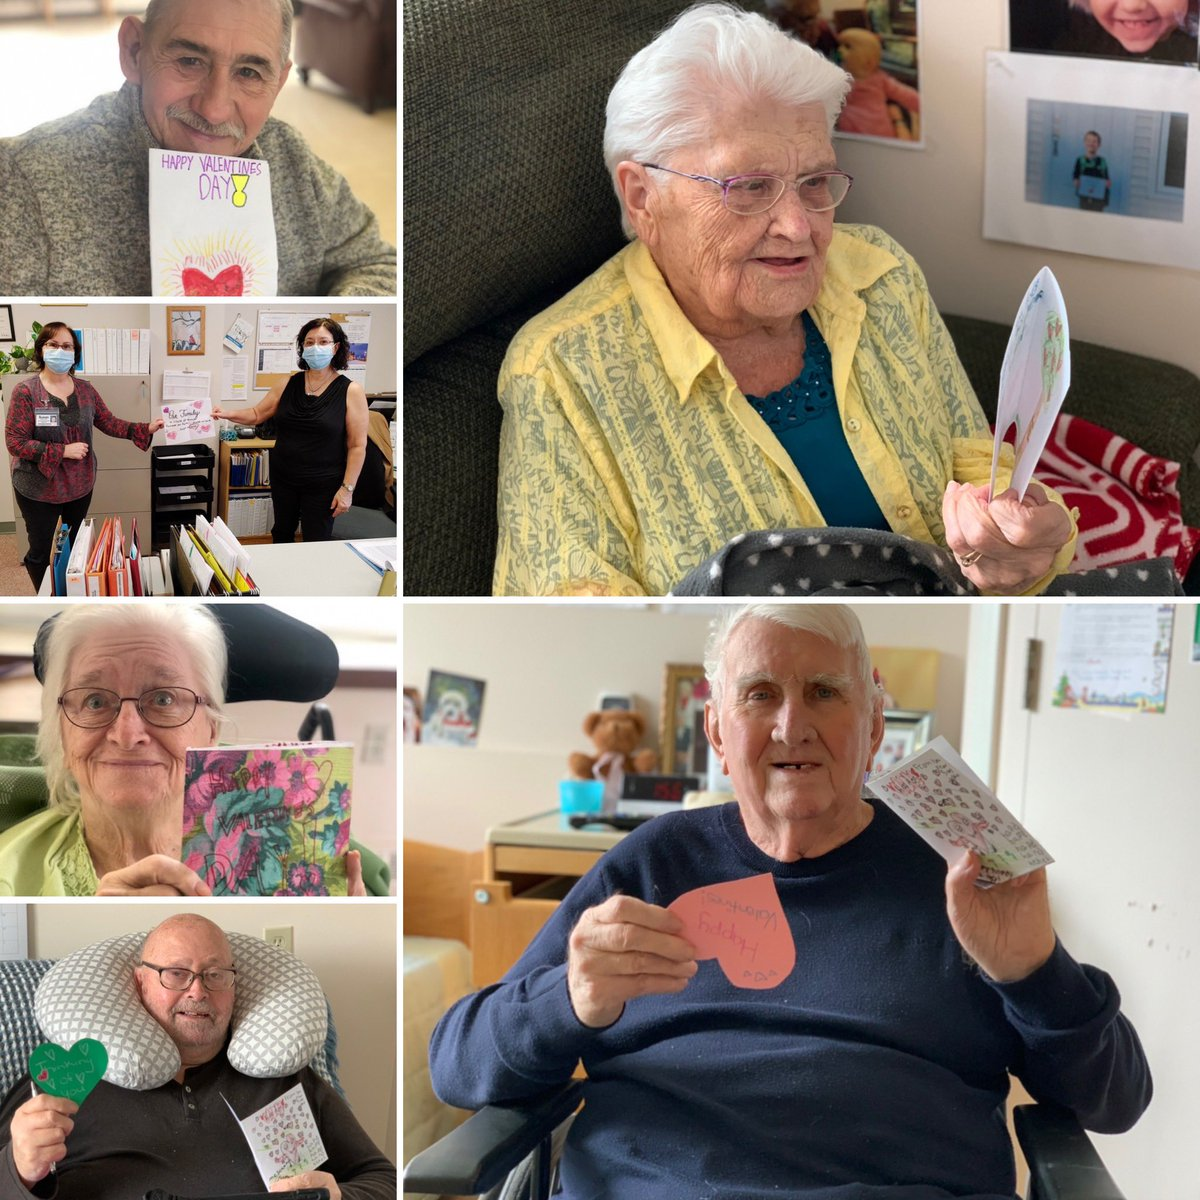 test Twitter Media - #appreciationpost - over the weekend we received more than 1500 #ValentinesDay and #FamilyDay cards for Providence Manor residents and staff! We just wanted to say a massive THANK YOU to the community for thinking of us and #sharingthelove! 🥰🥰🥰 #ygk https://t.co/5x1XOUysNI